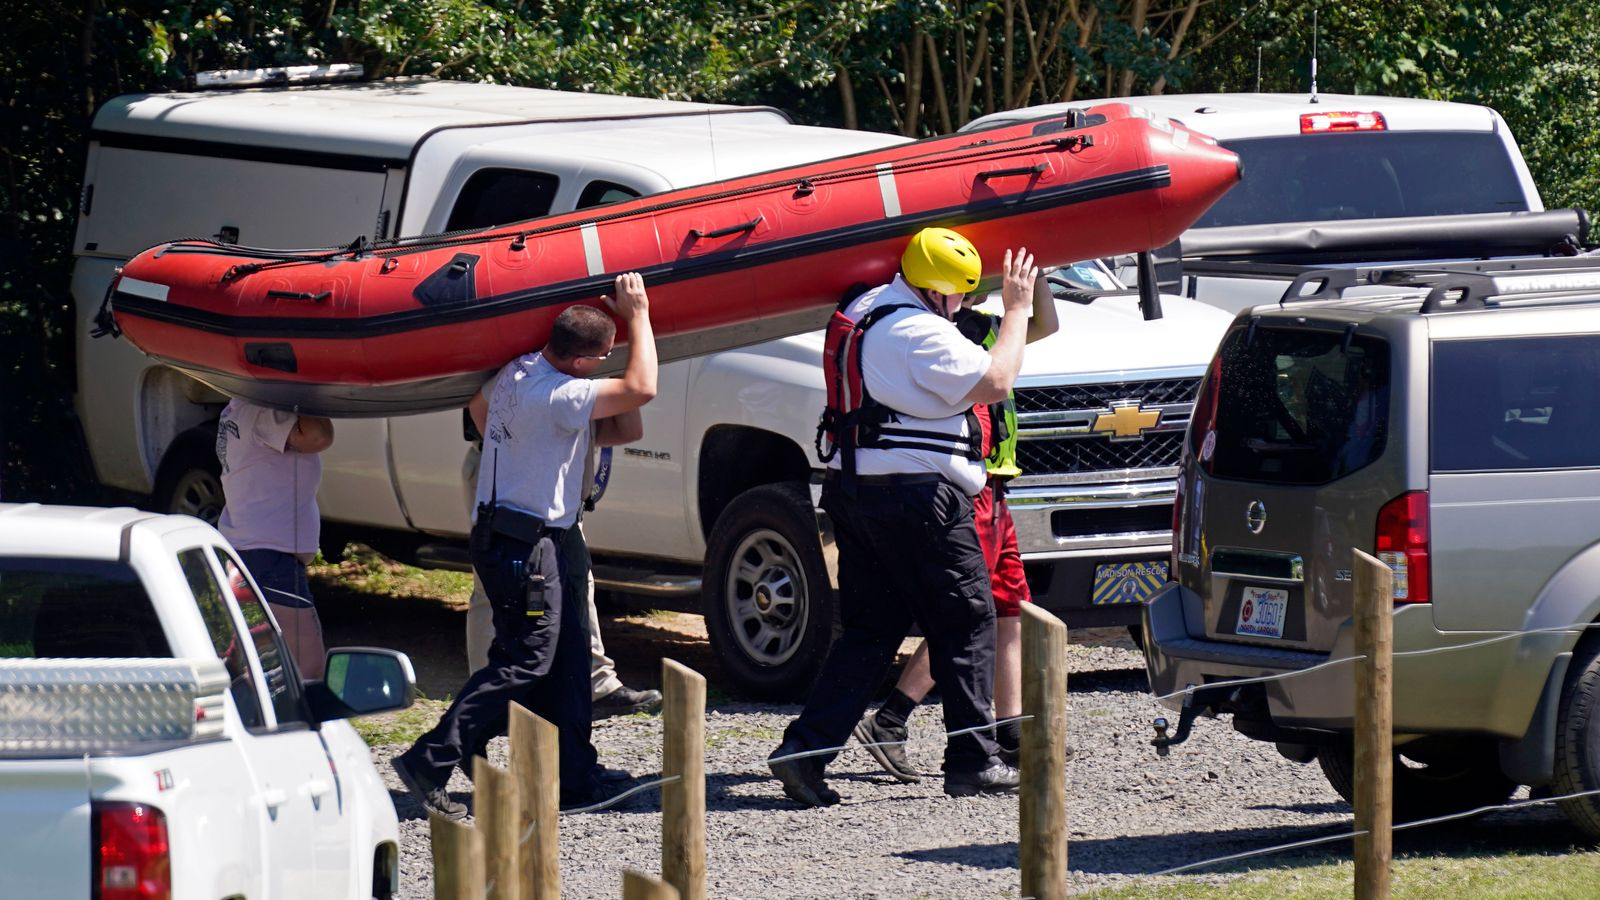 Three killed, two missing after dropping over dam in inflatable rings – four rescued after 19 hours